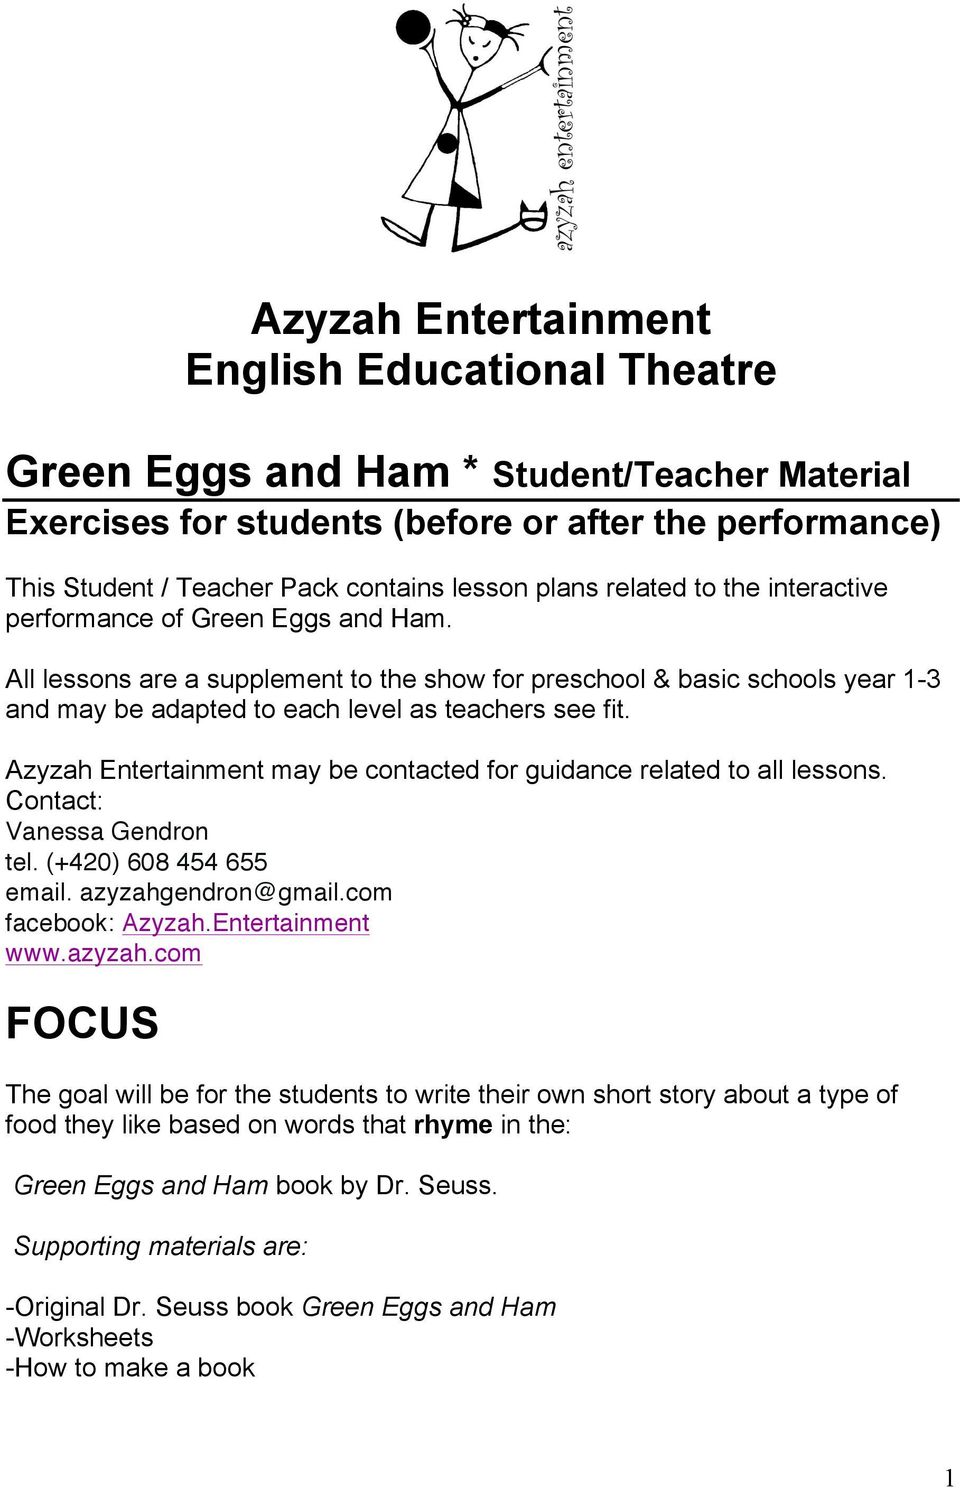 hight resolution of Azyzah Entertainment English Educational Theatre - PDF Free Download